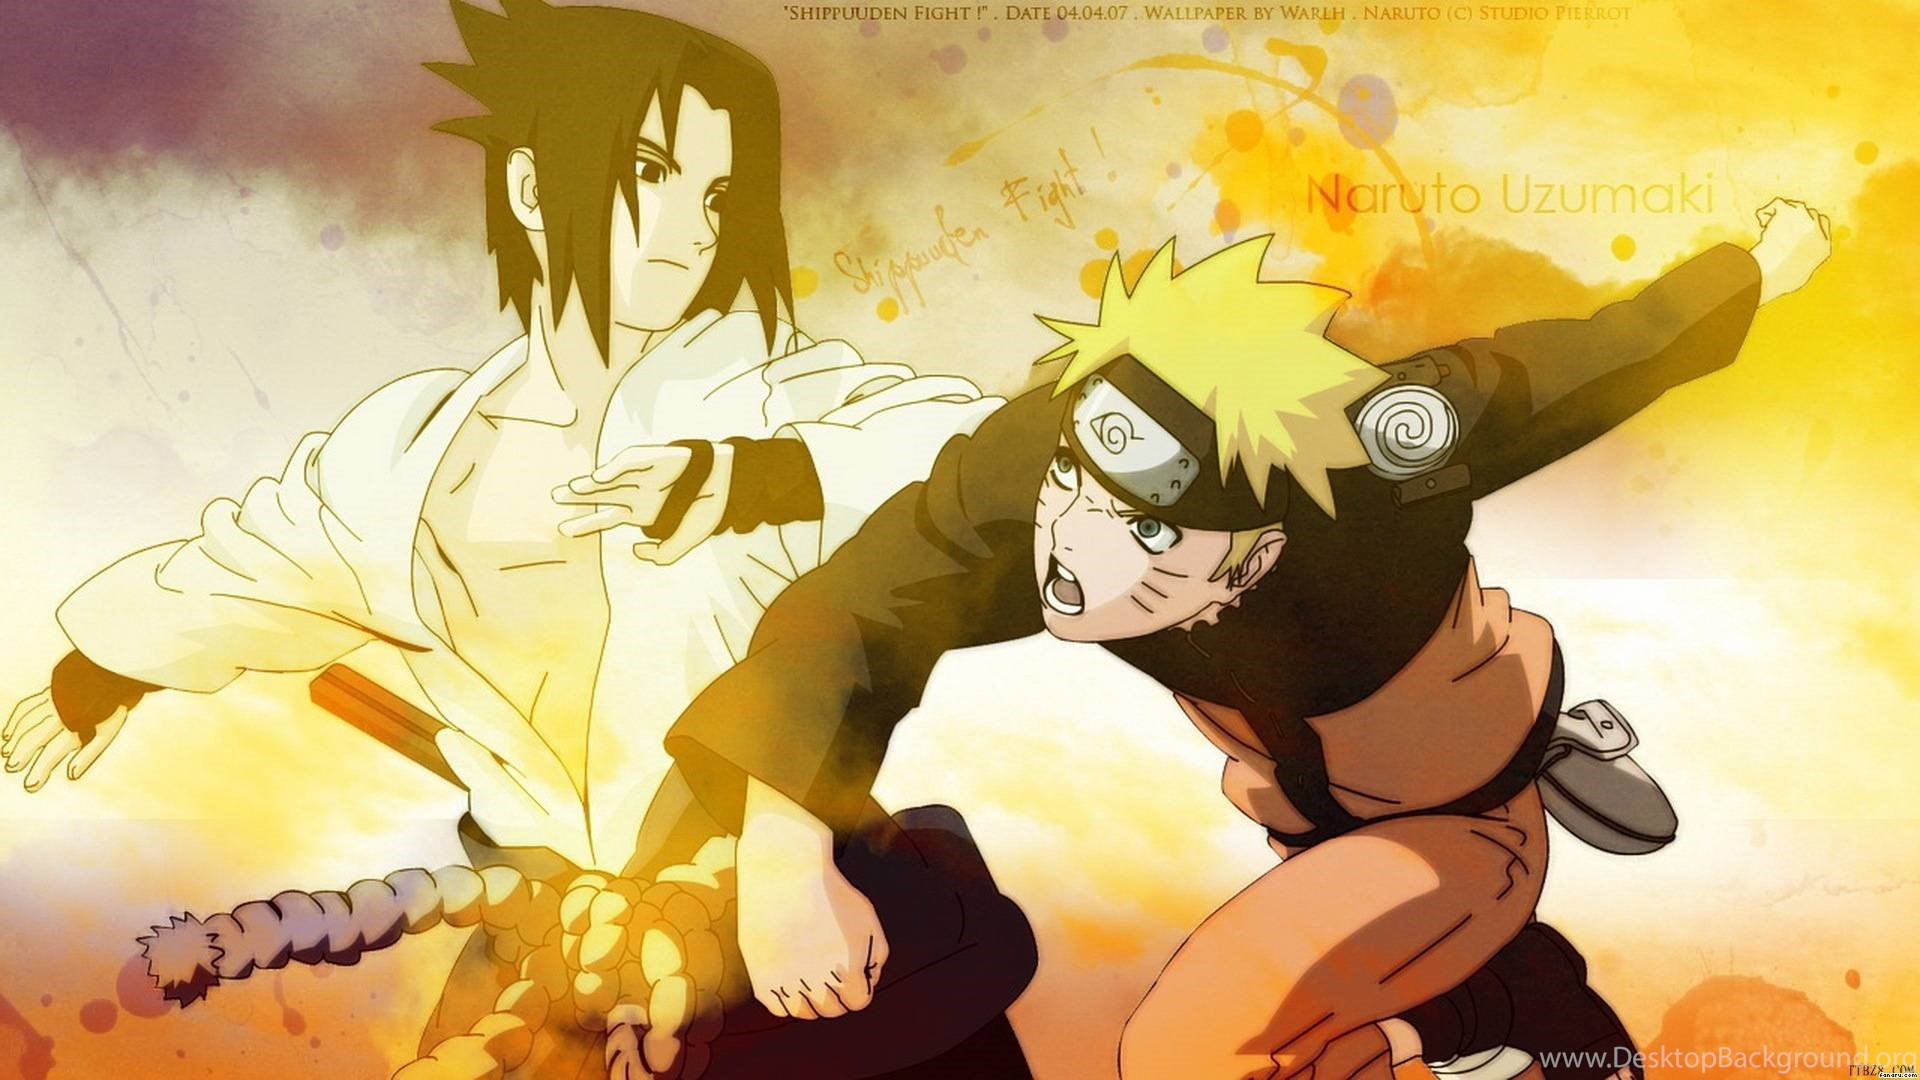 850794 anime wallpaper naruto vs sasuke wide wallpapers hd